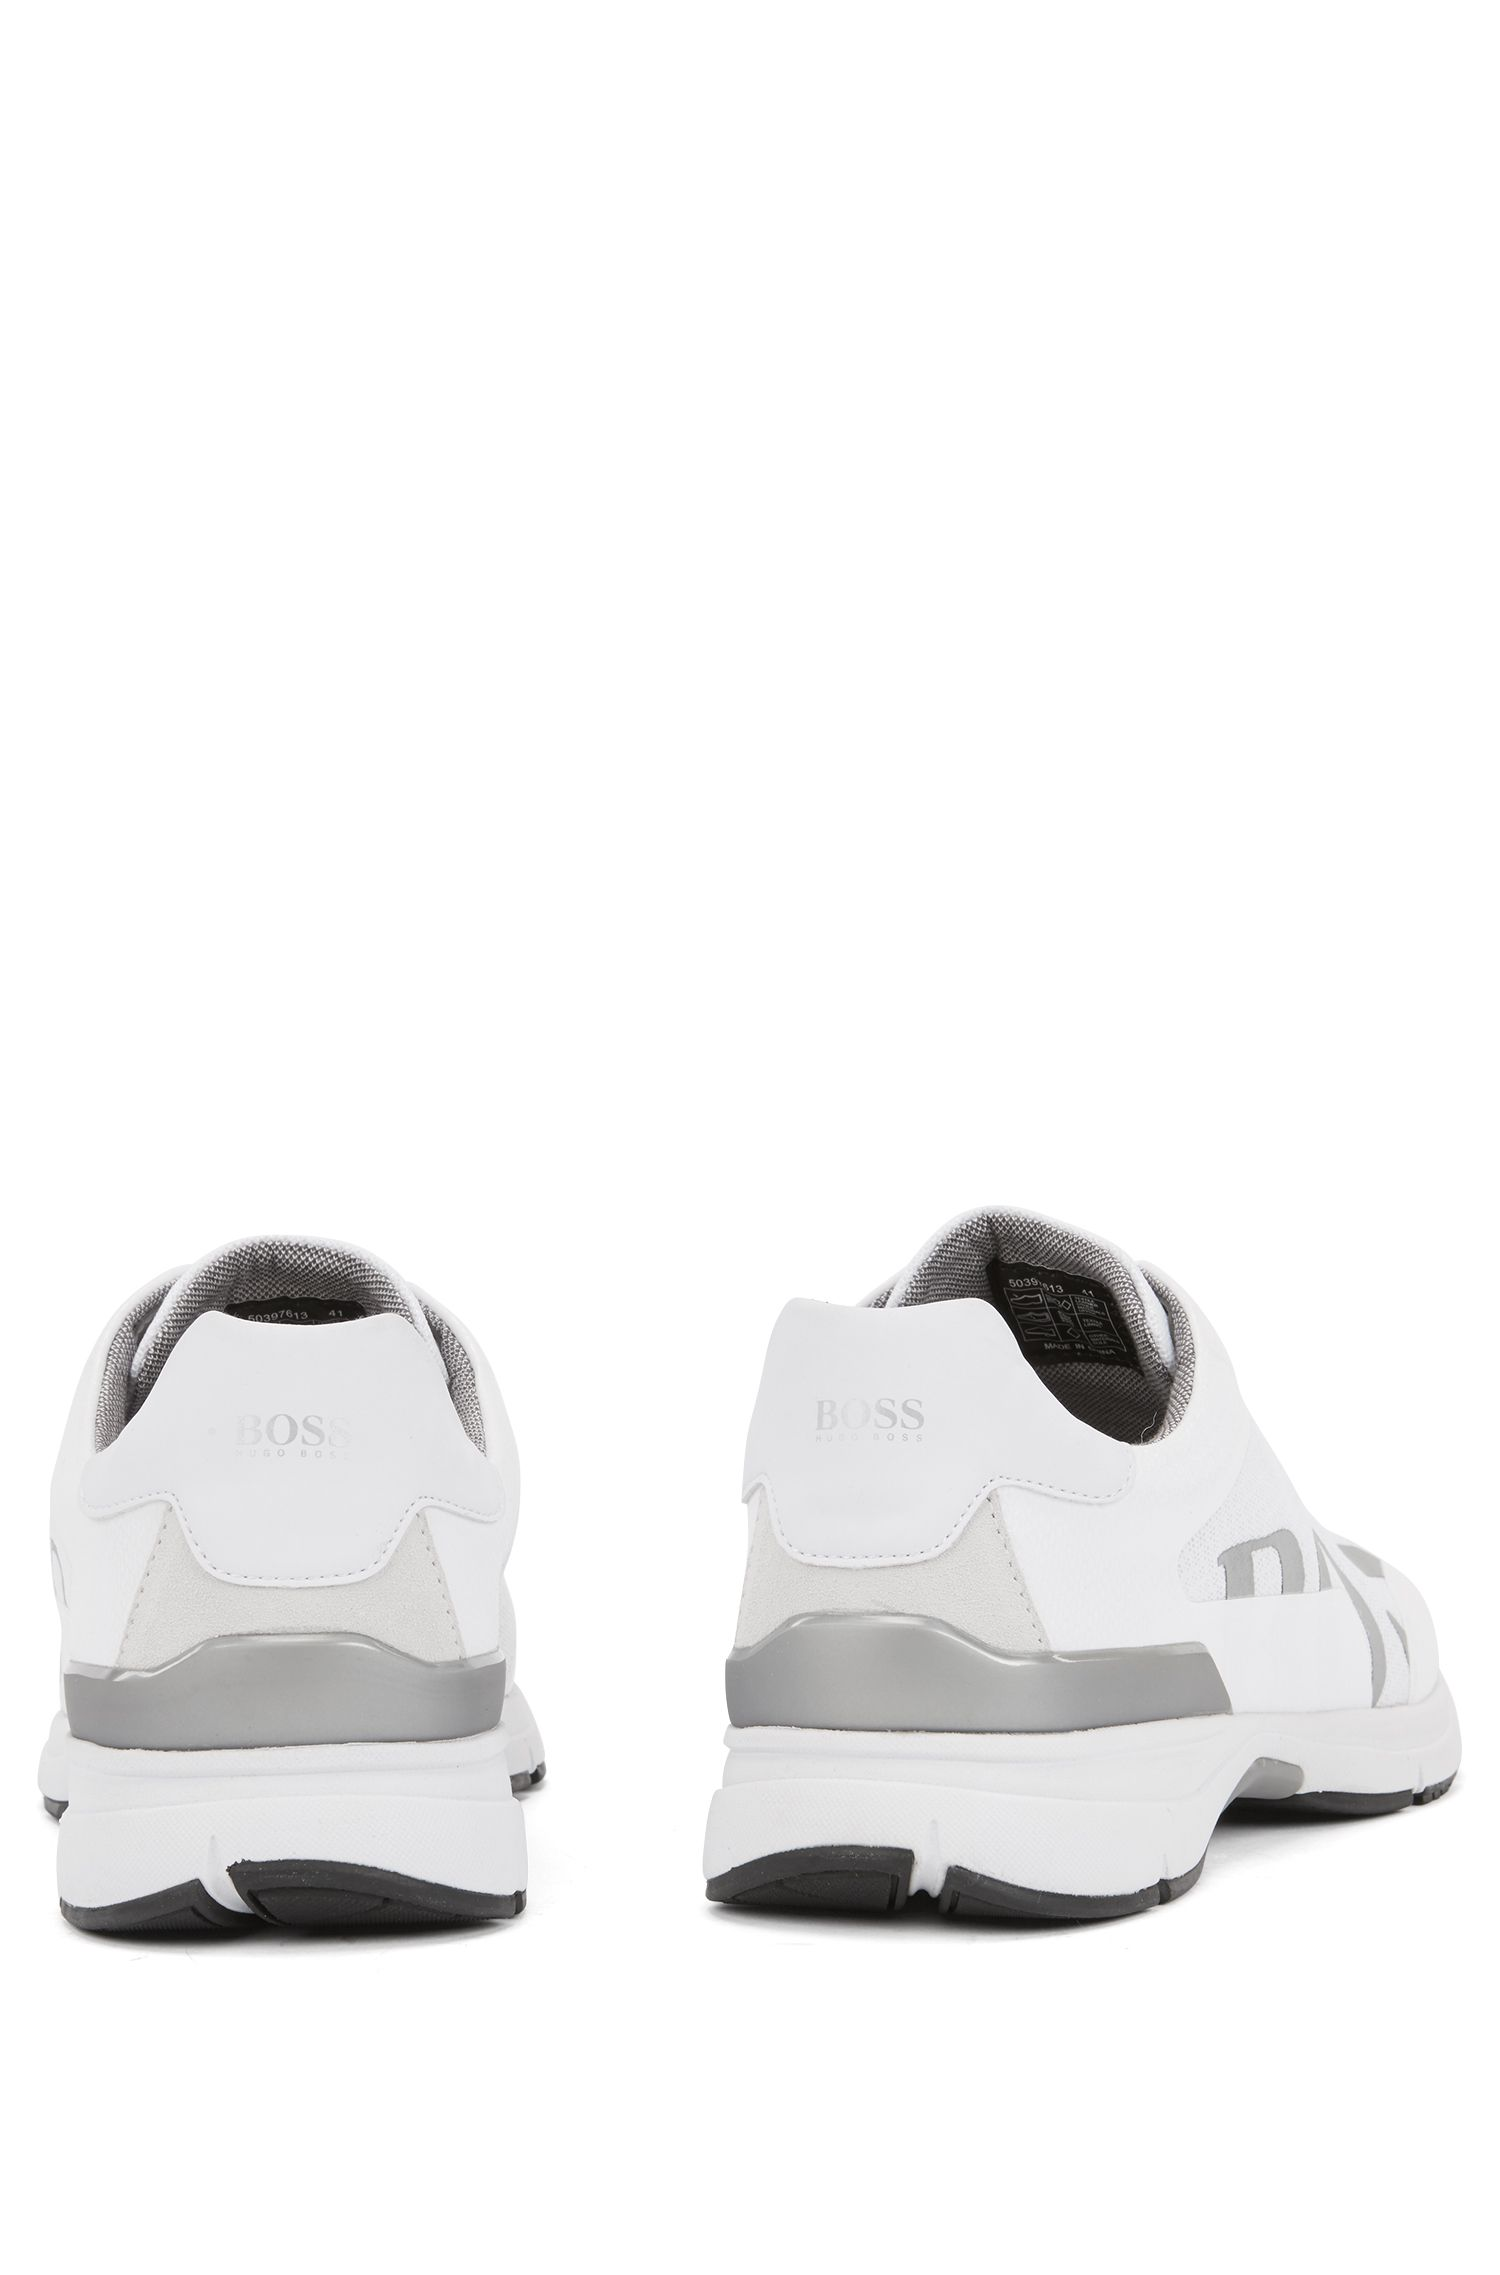 Running-inspired trainers with bamboo-charcoal lining, White